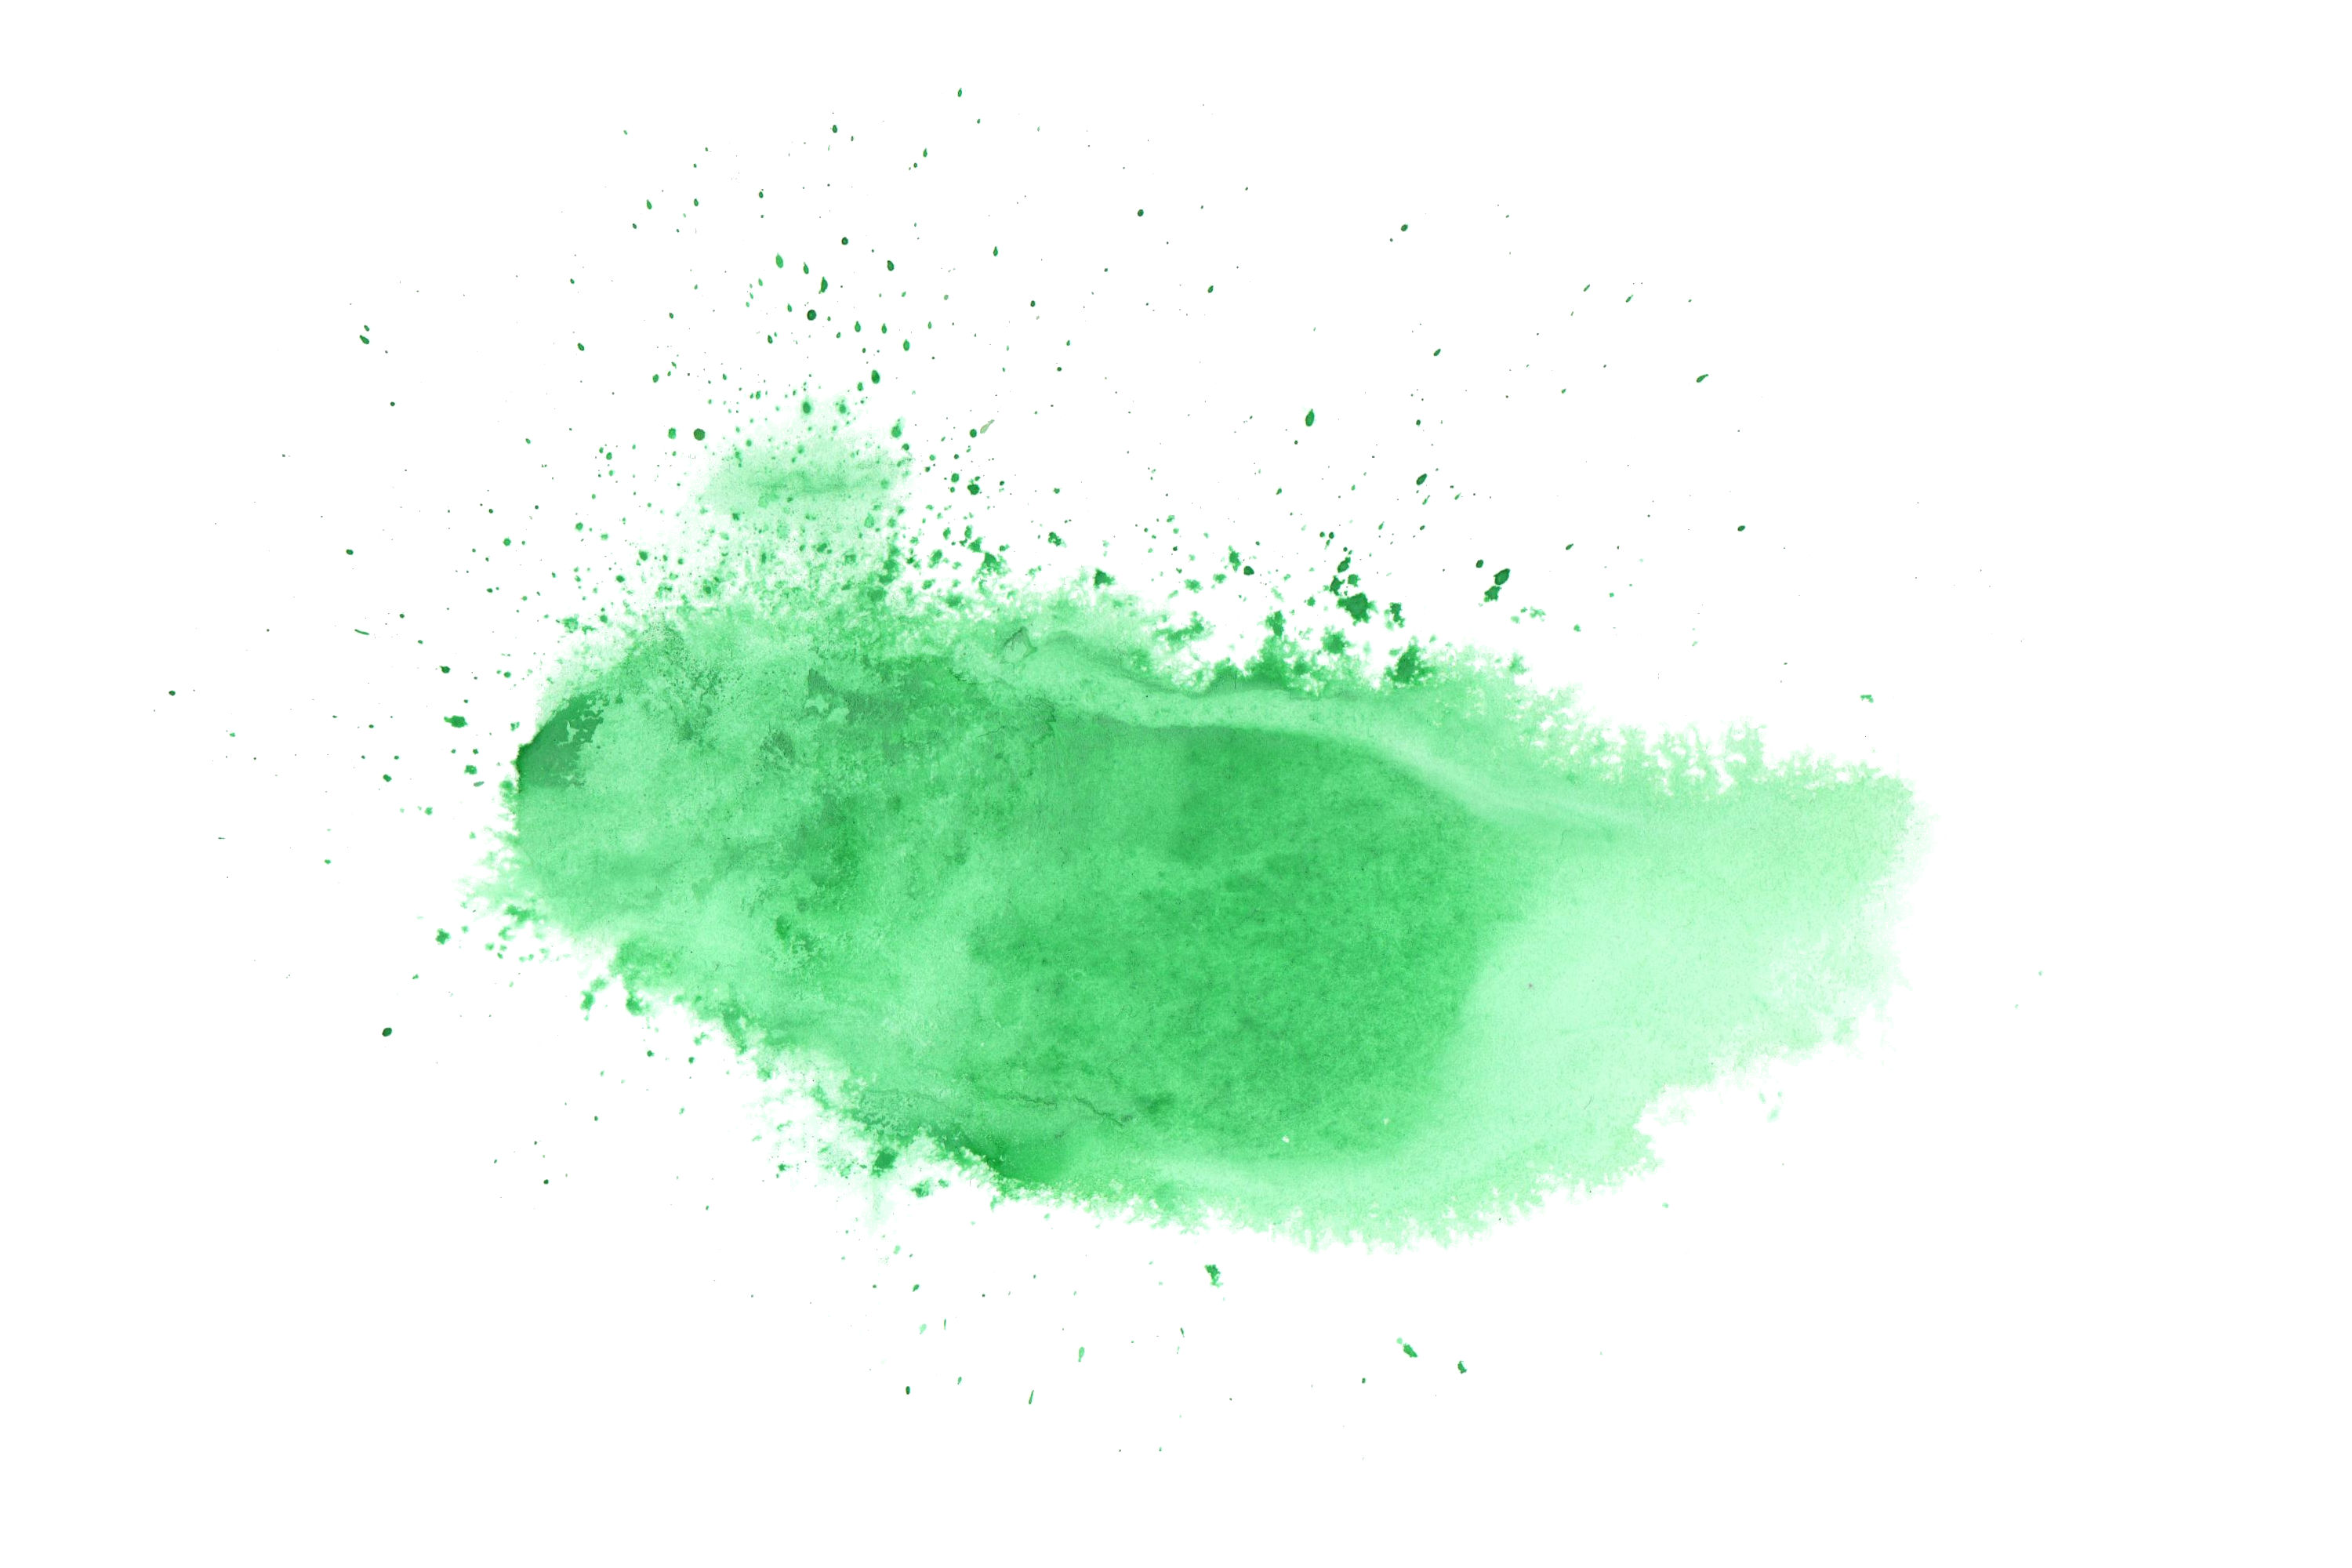 Green Paint Background Watercolor